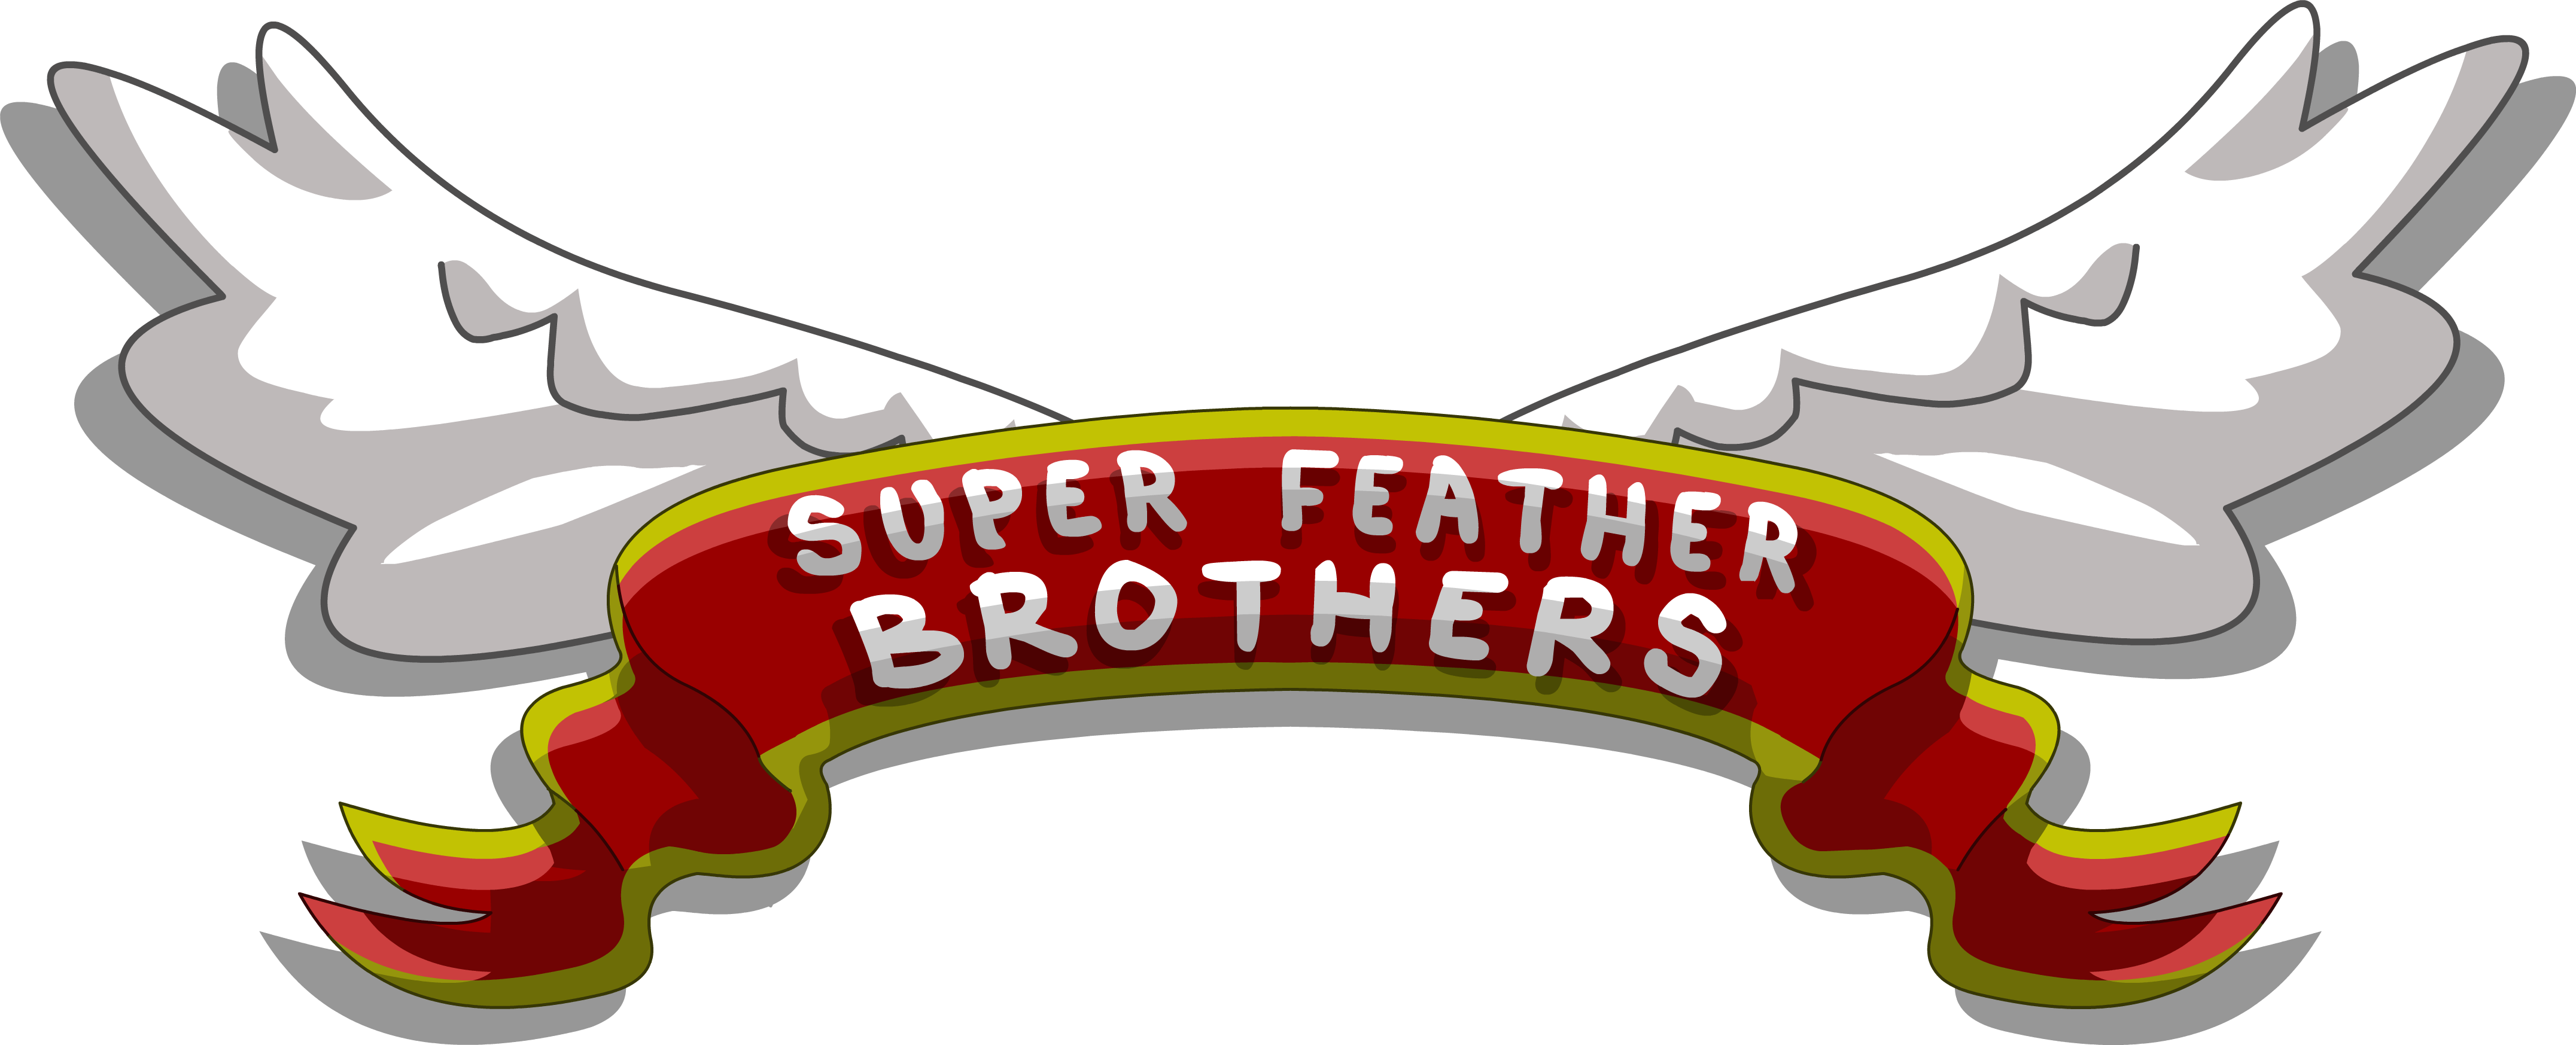 Super Feather Brothers